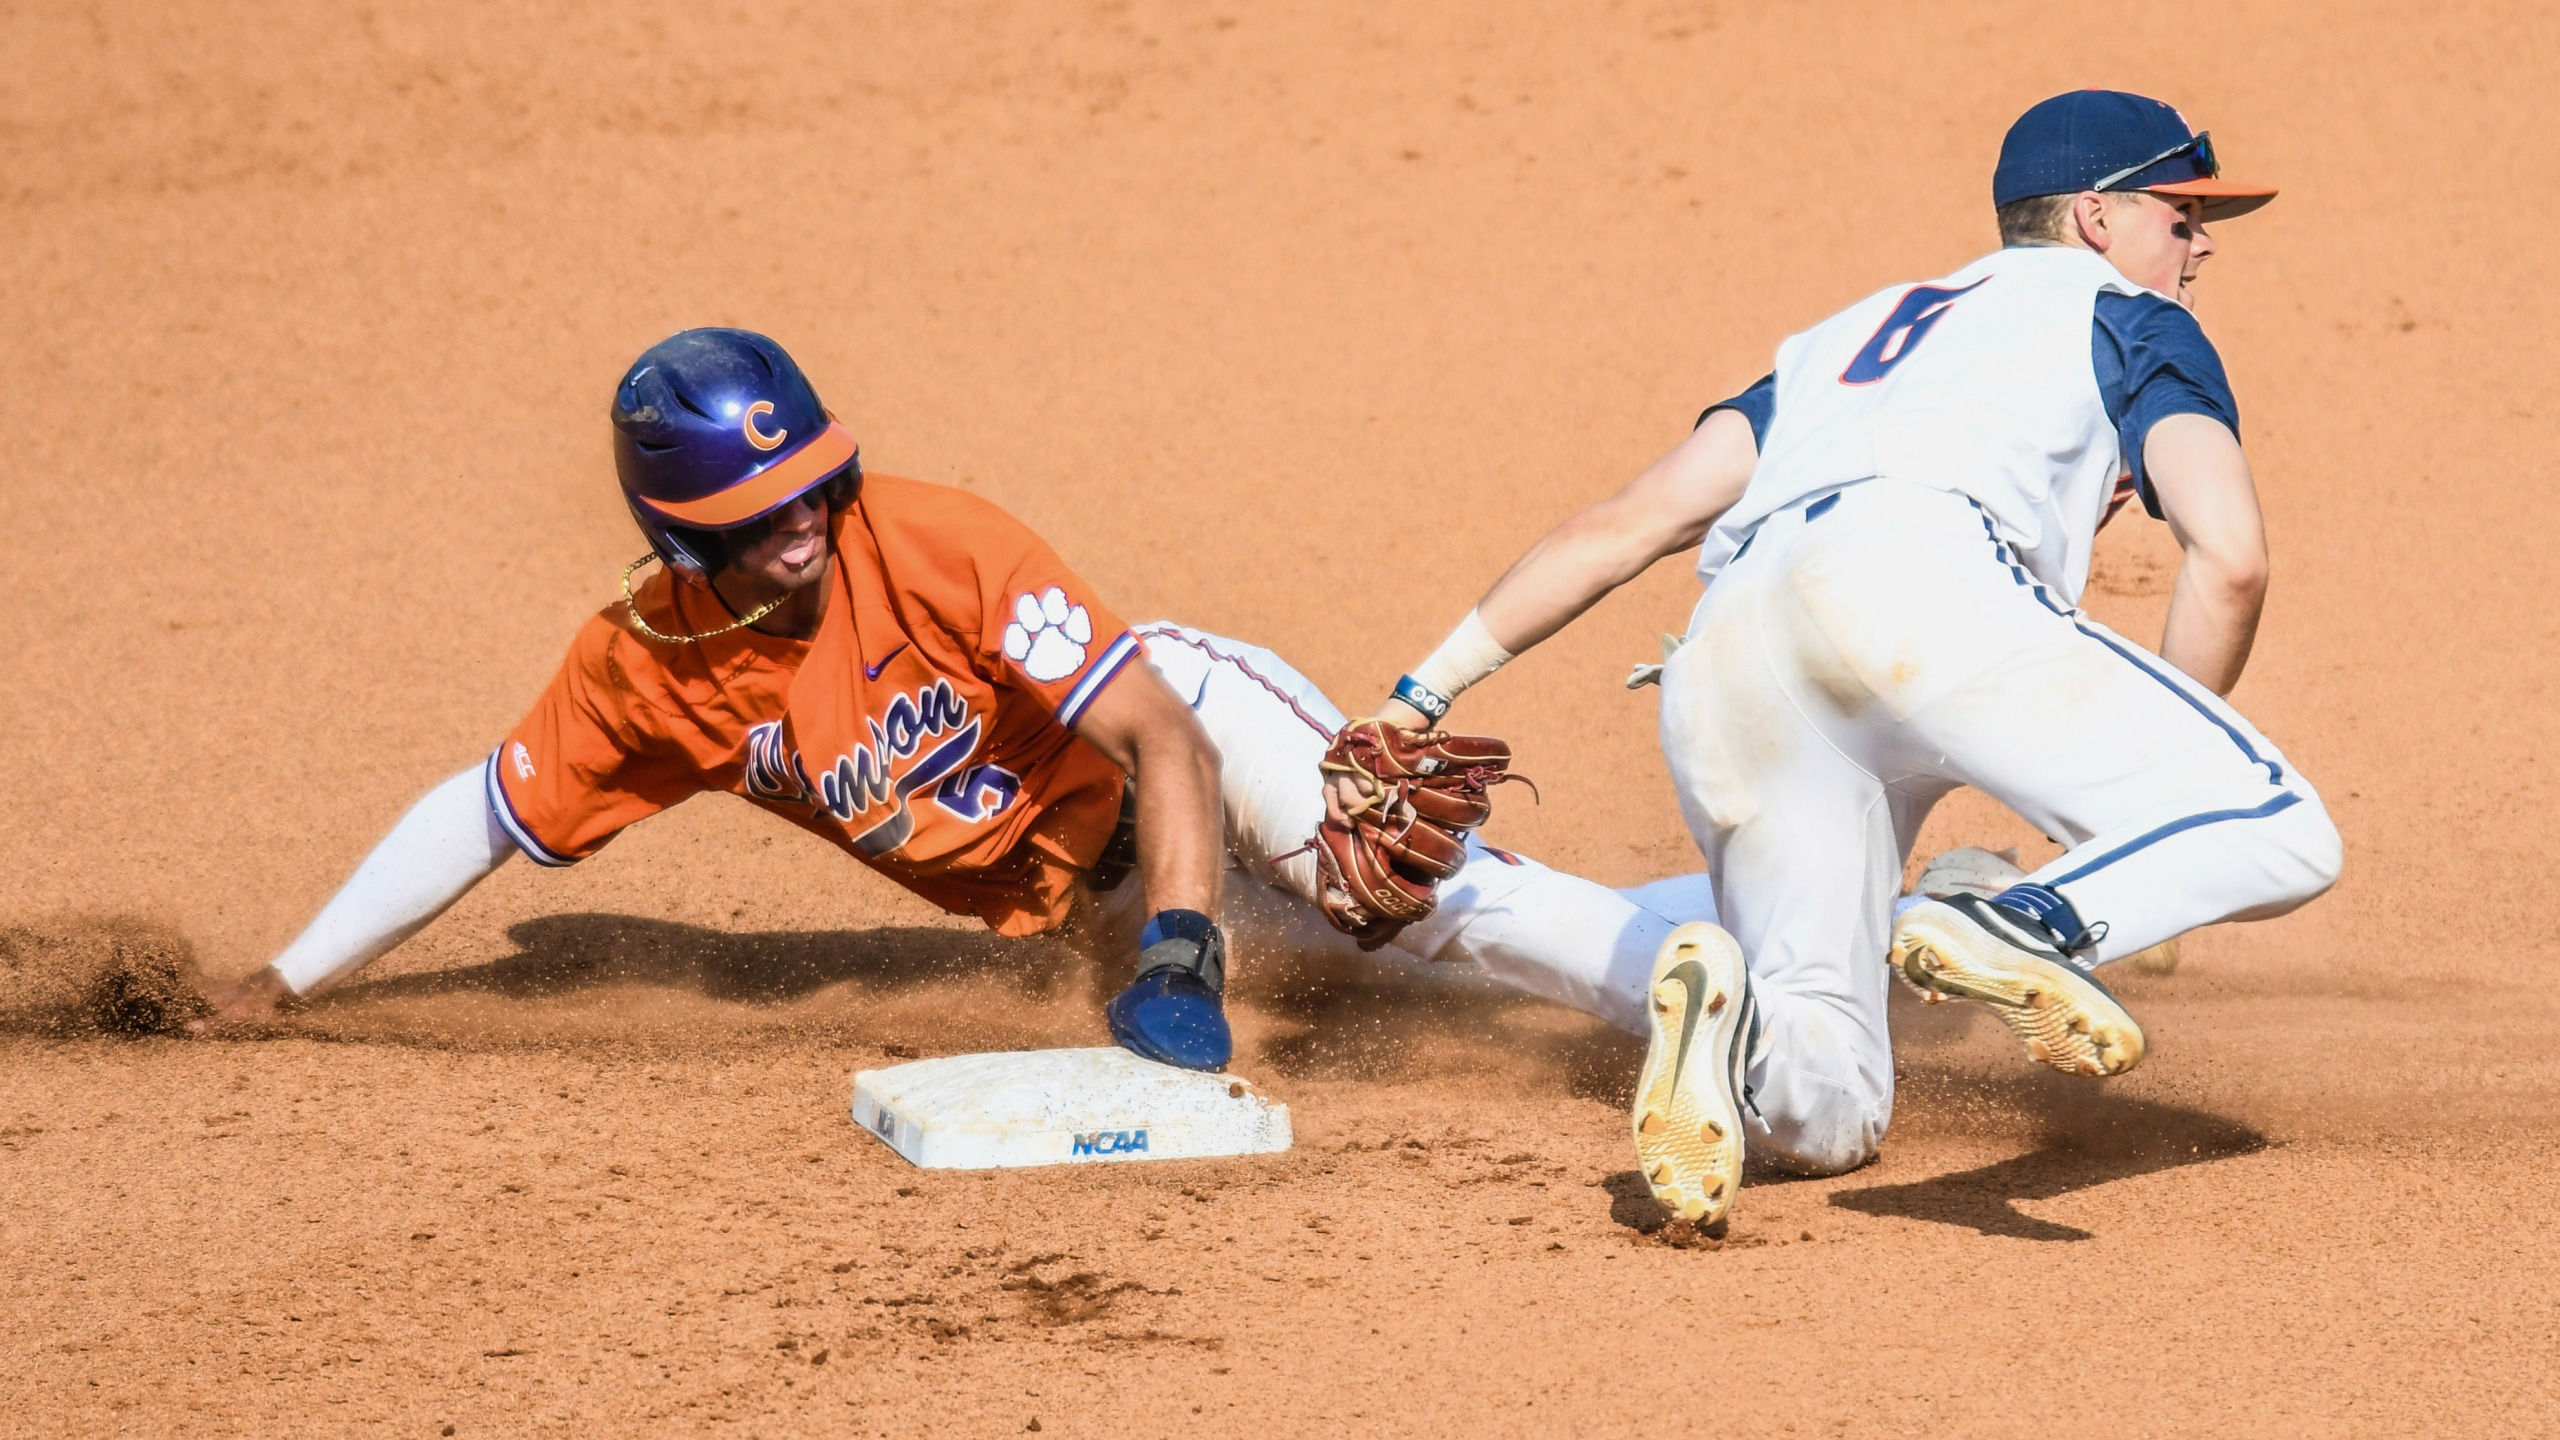 NCAA_Clemson_Illinois_Baseball_53780-159532.jpg78637865